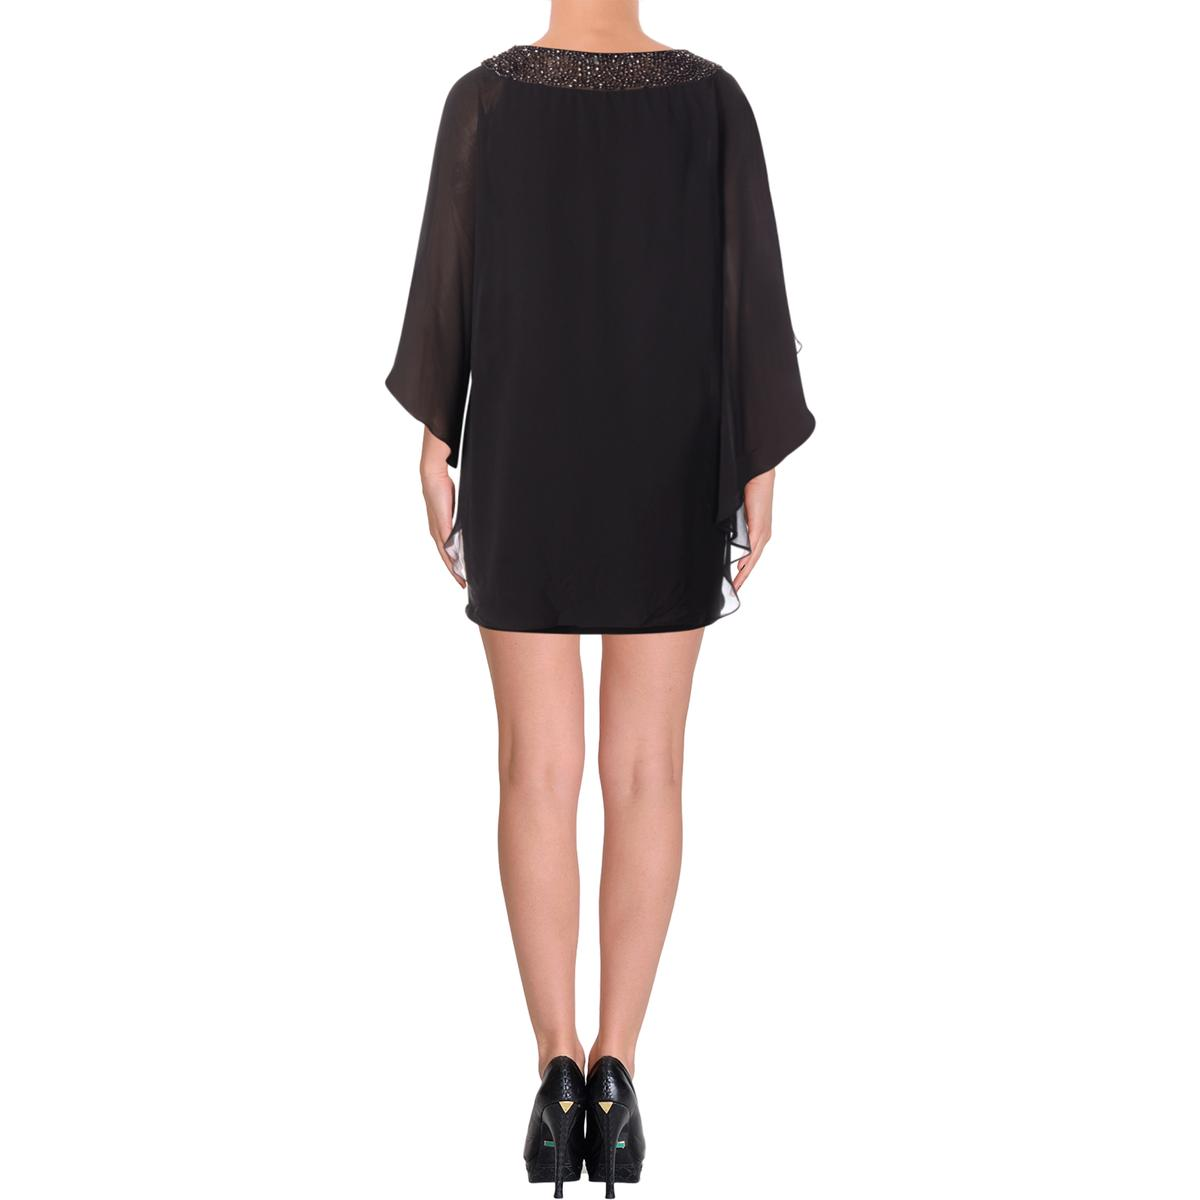 jurk Petites Cape verfraaide 7857 Overlay cocktail Bhfo Womens Xscape zw1xqnBX